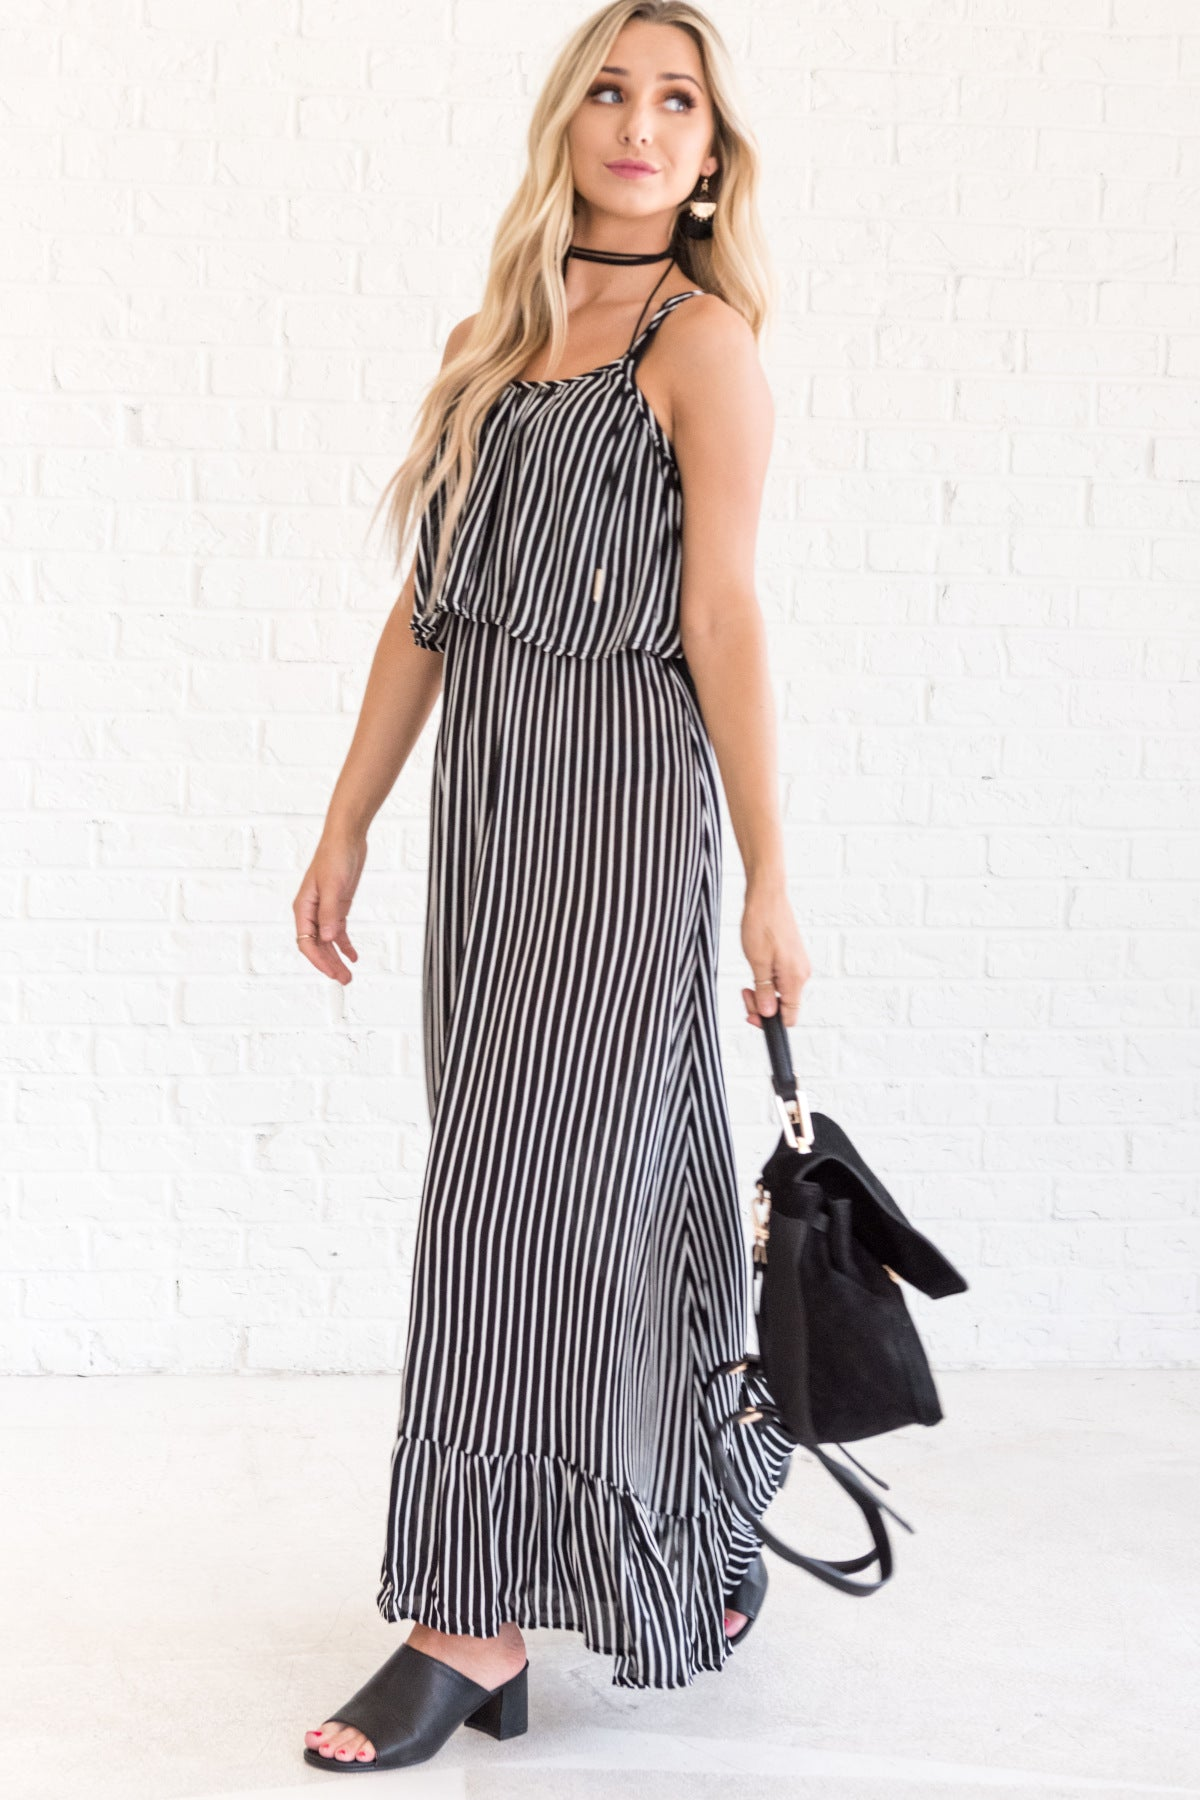 Black Striped Floor Length Maxi Dress with Ruffle Detail